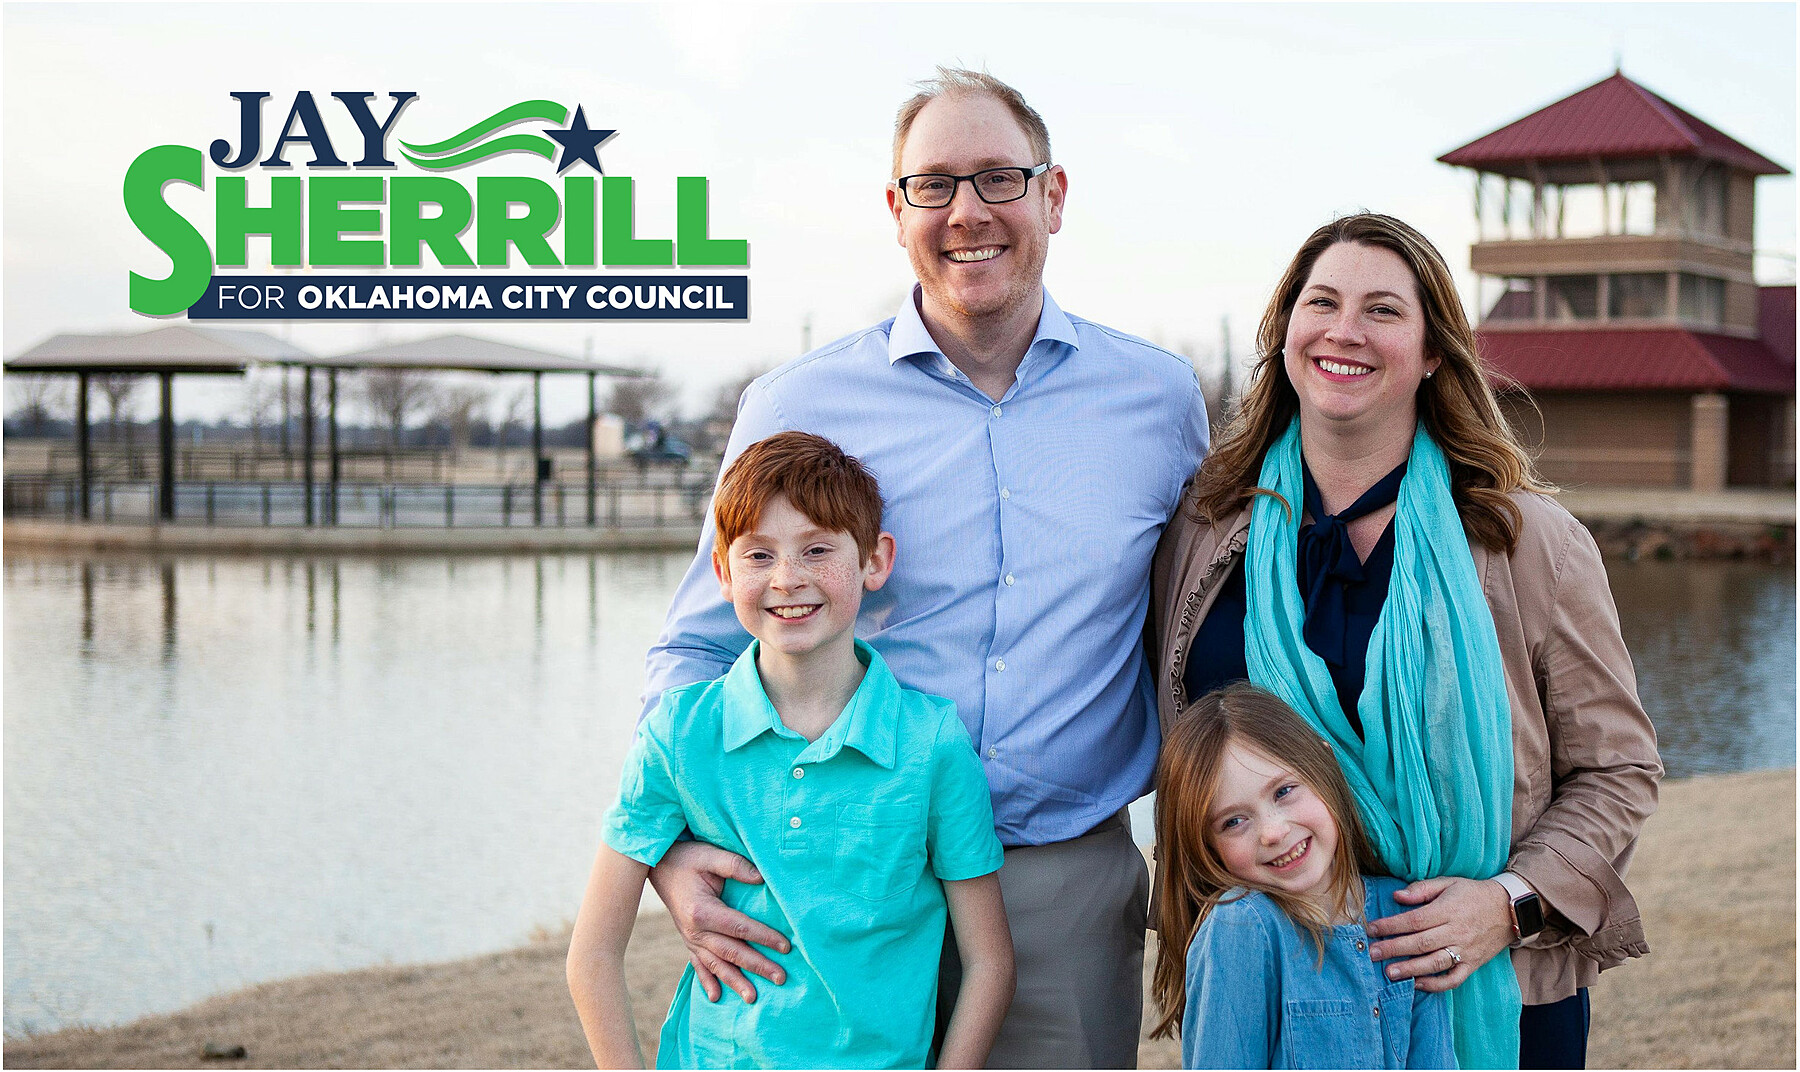 Friends of Jay Sherrill for City Council 2021: Jay Sherrill for OKC Council 2021